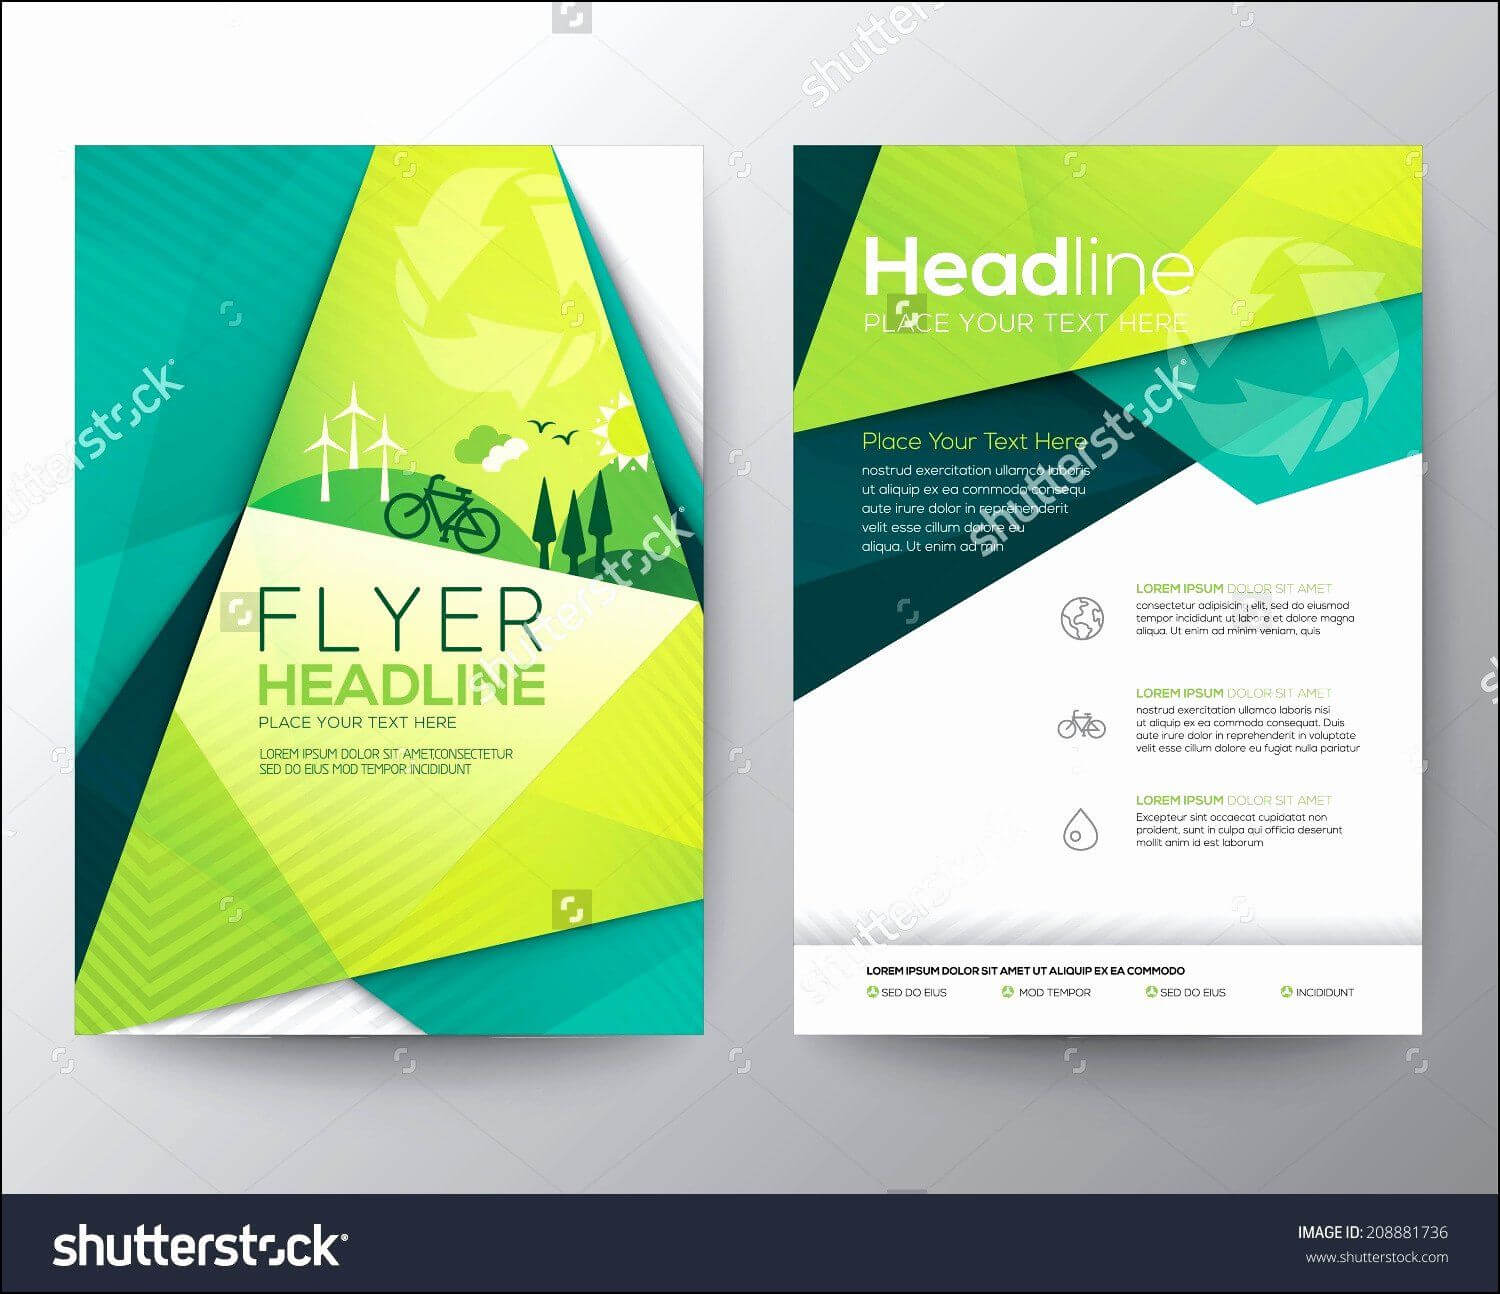 010 Brochure Templates Free Download For Word Flyer Design With Regard To Creative Brochure Templates Free Download